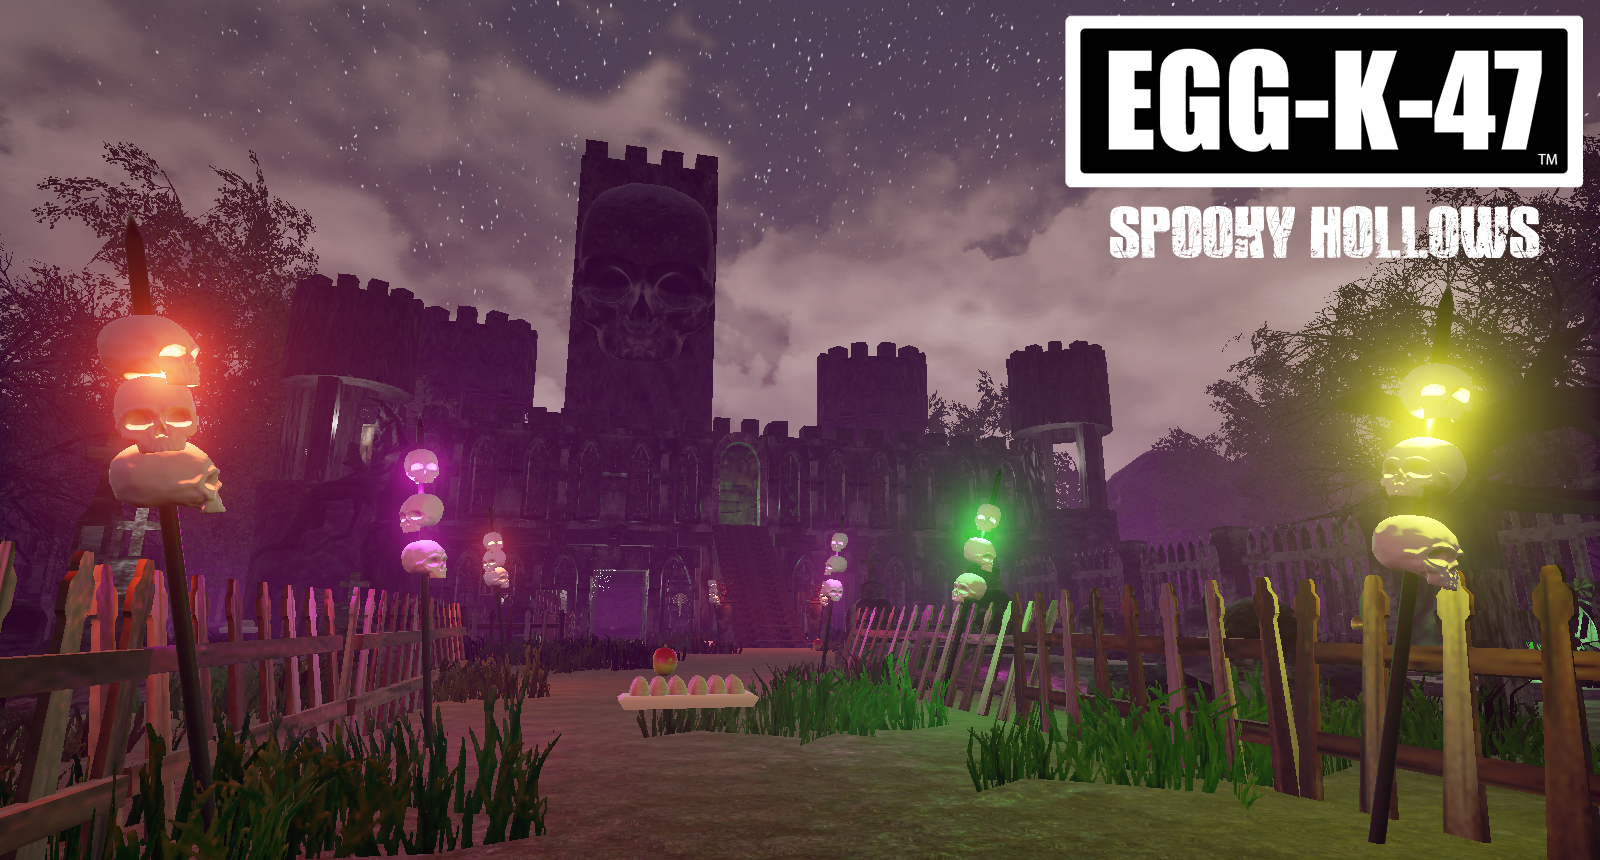 eggk47 spooky hollows game update